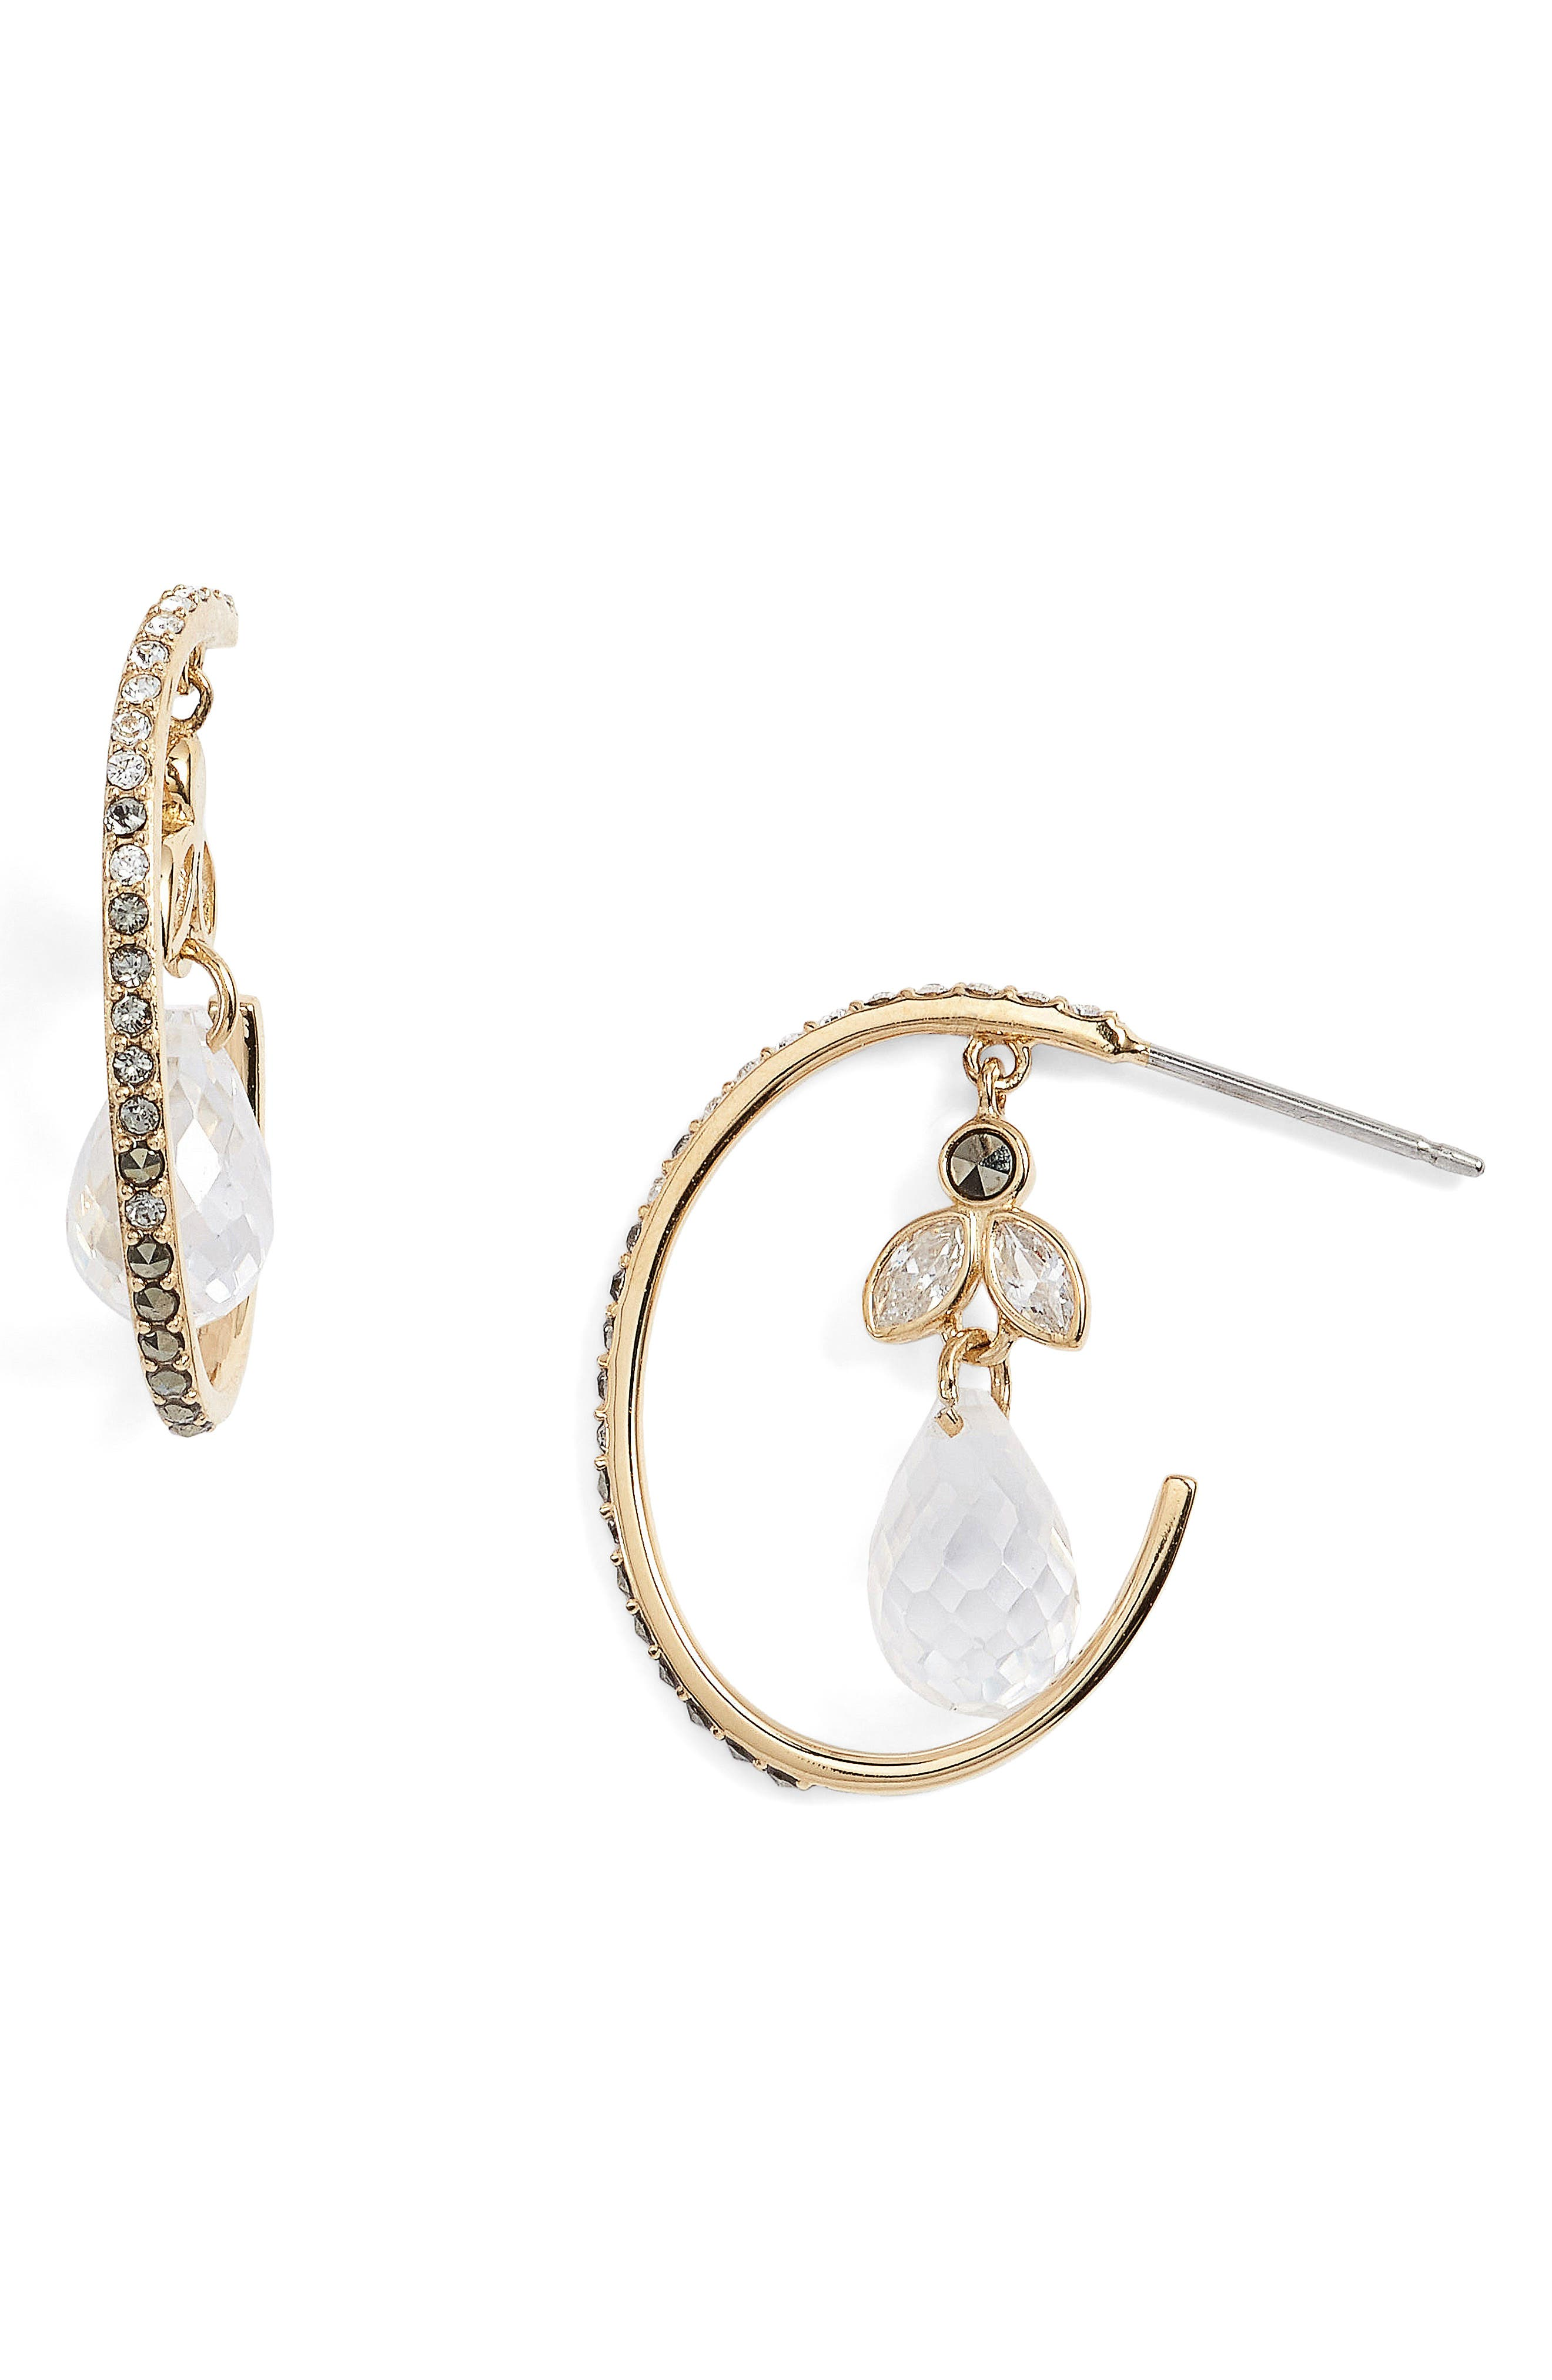 Main Image - Judith Jack Crystal Hoop Earrings